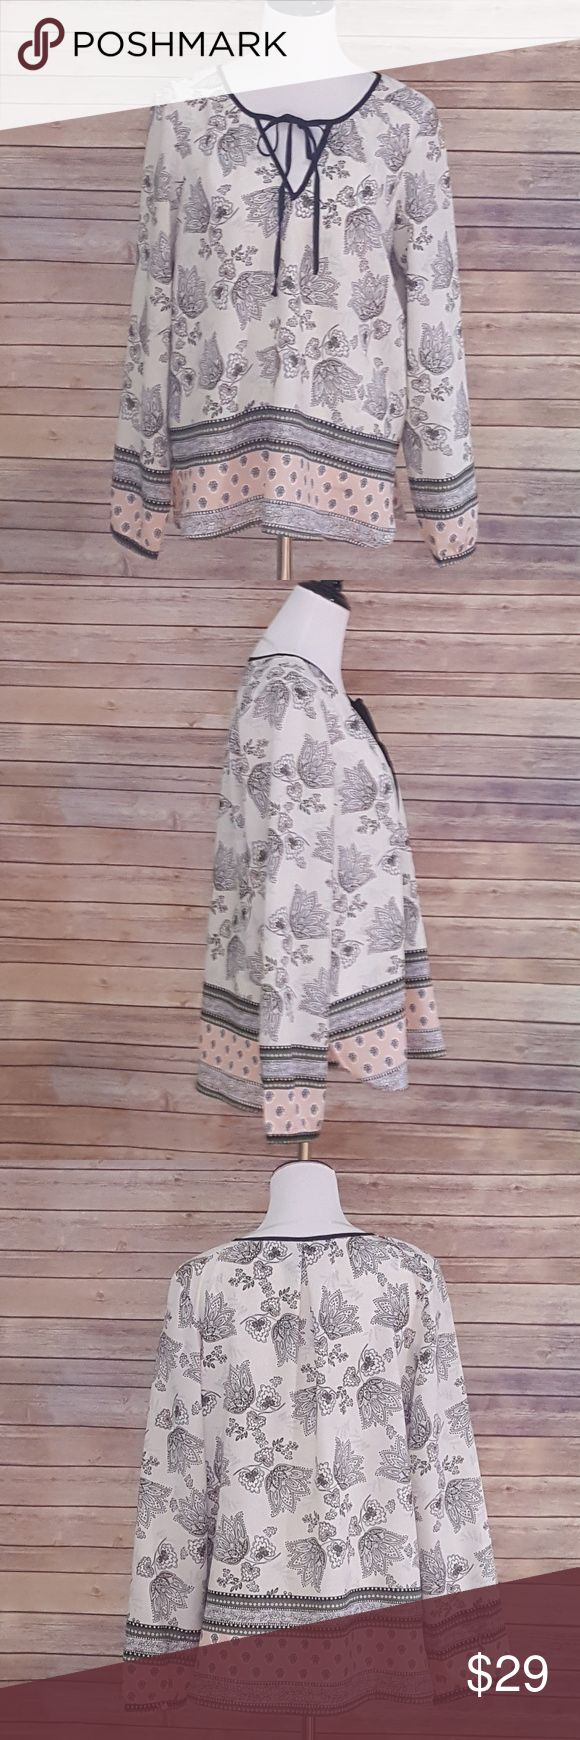 """Sanctuary Boho Blouse Worn once - Excellent preowned condition.   Approx. 22"""" across bust, 26.5"""" length Sanctuary Tops Blouses"""